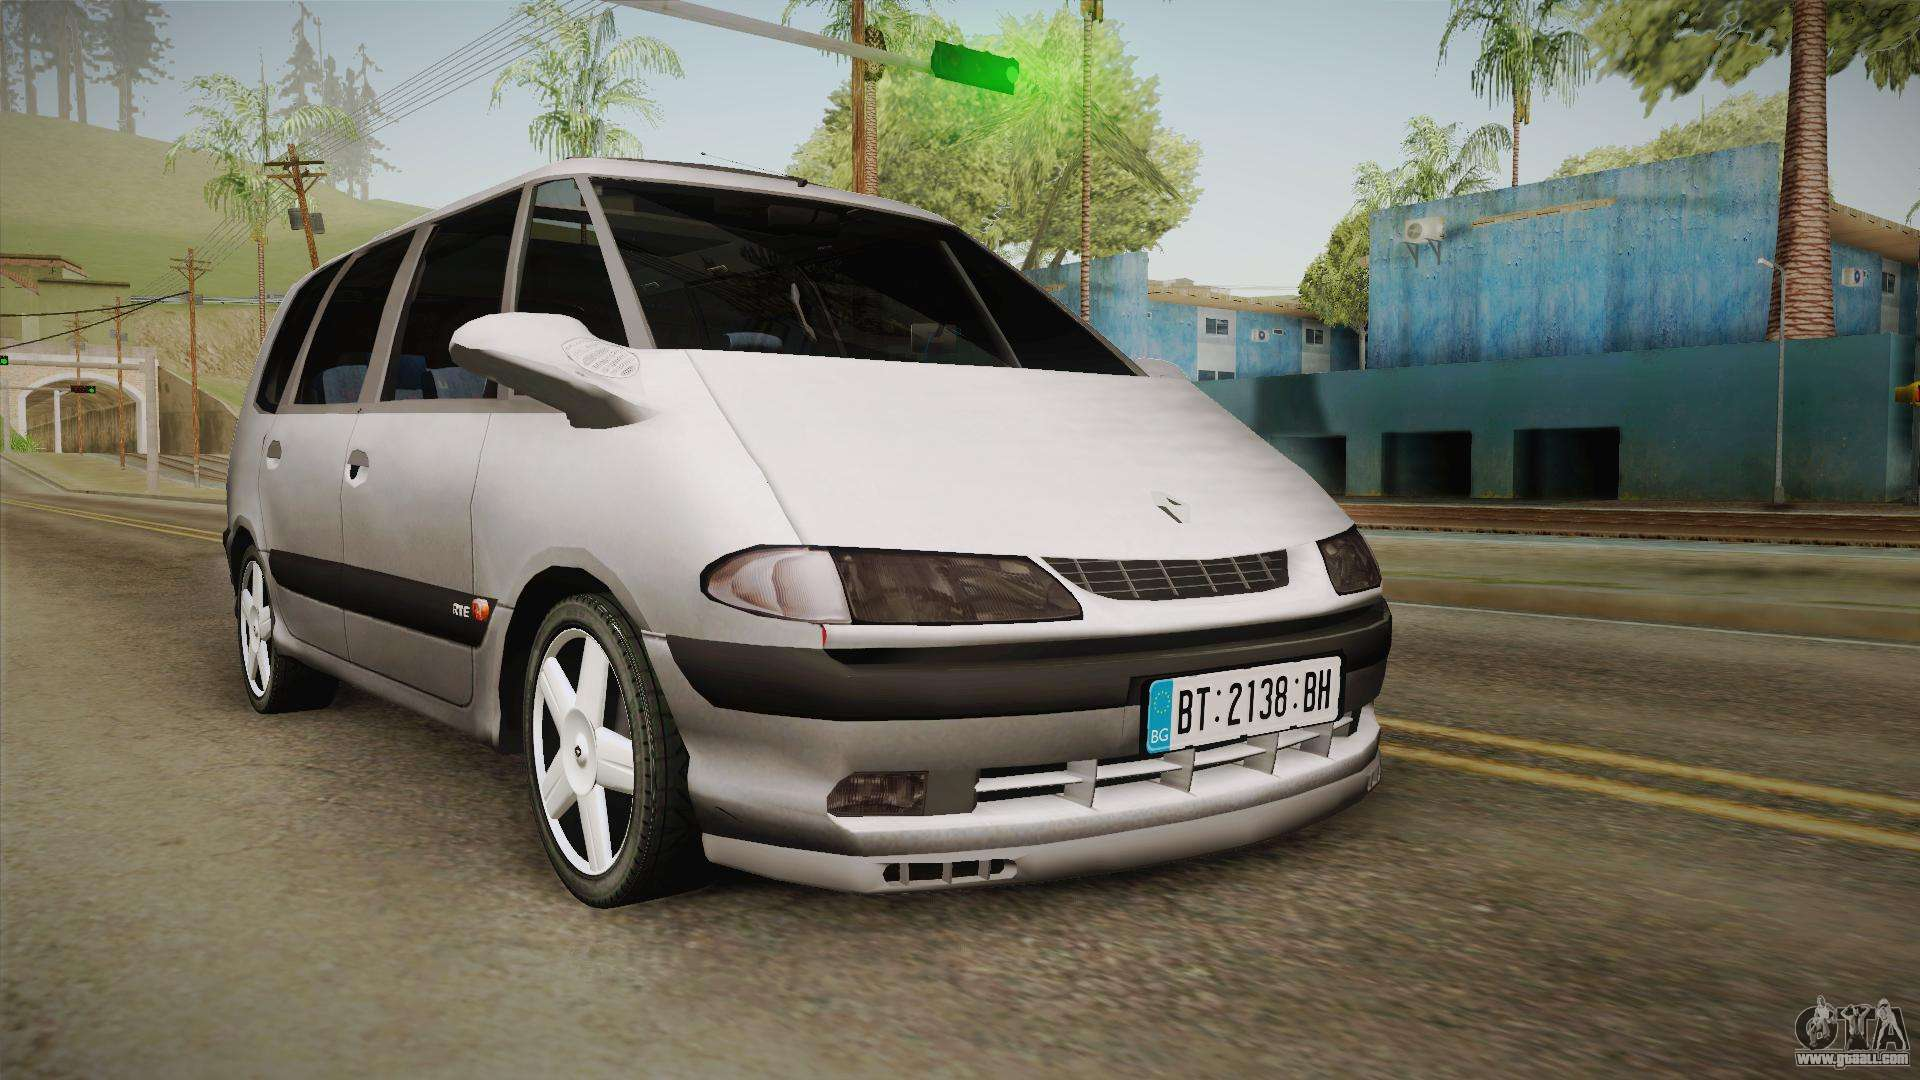 renault espace 1999 2 0 16v for gta san andreas. Black Bedroom Furniture Sets. Home Design Ideas